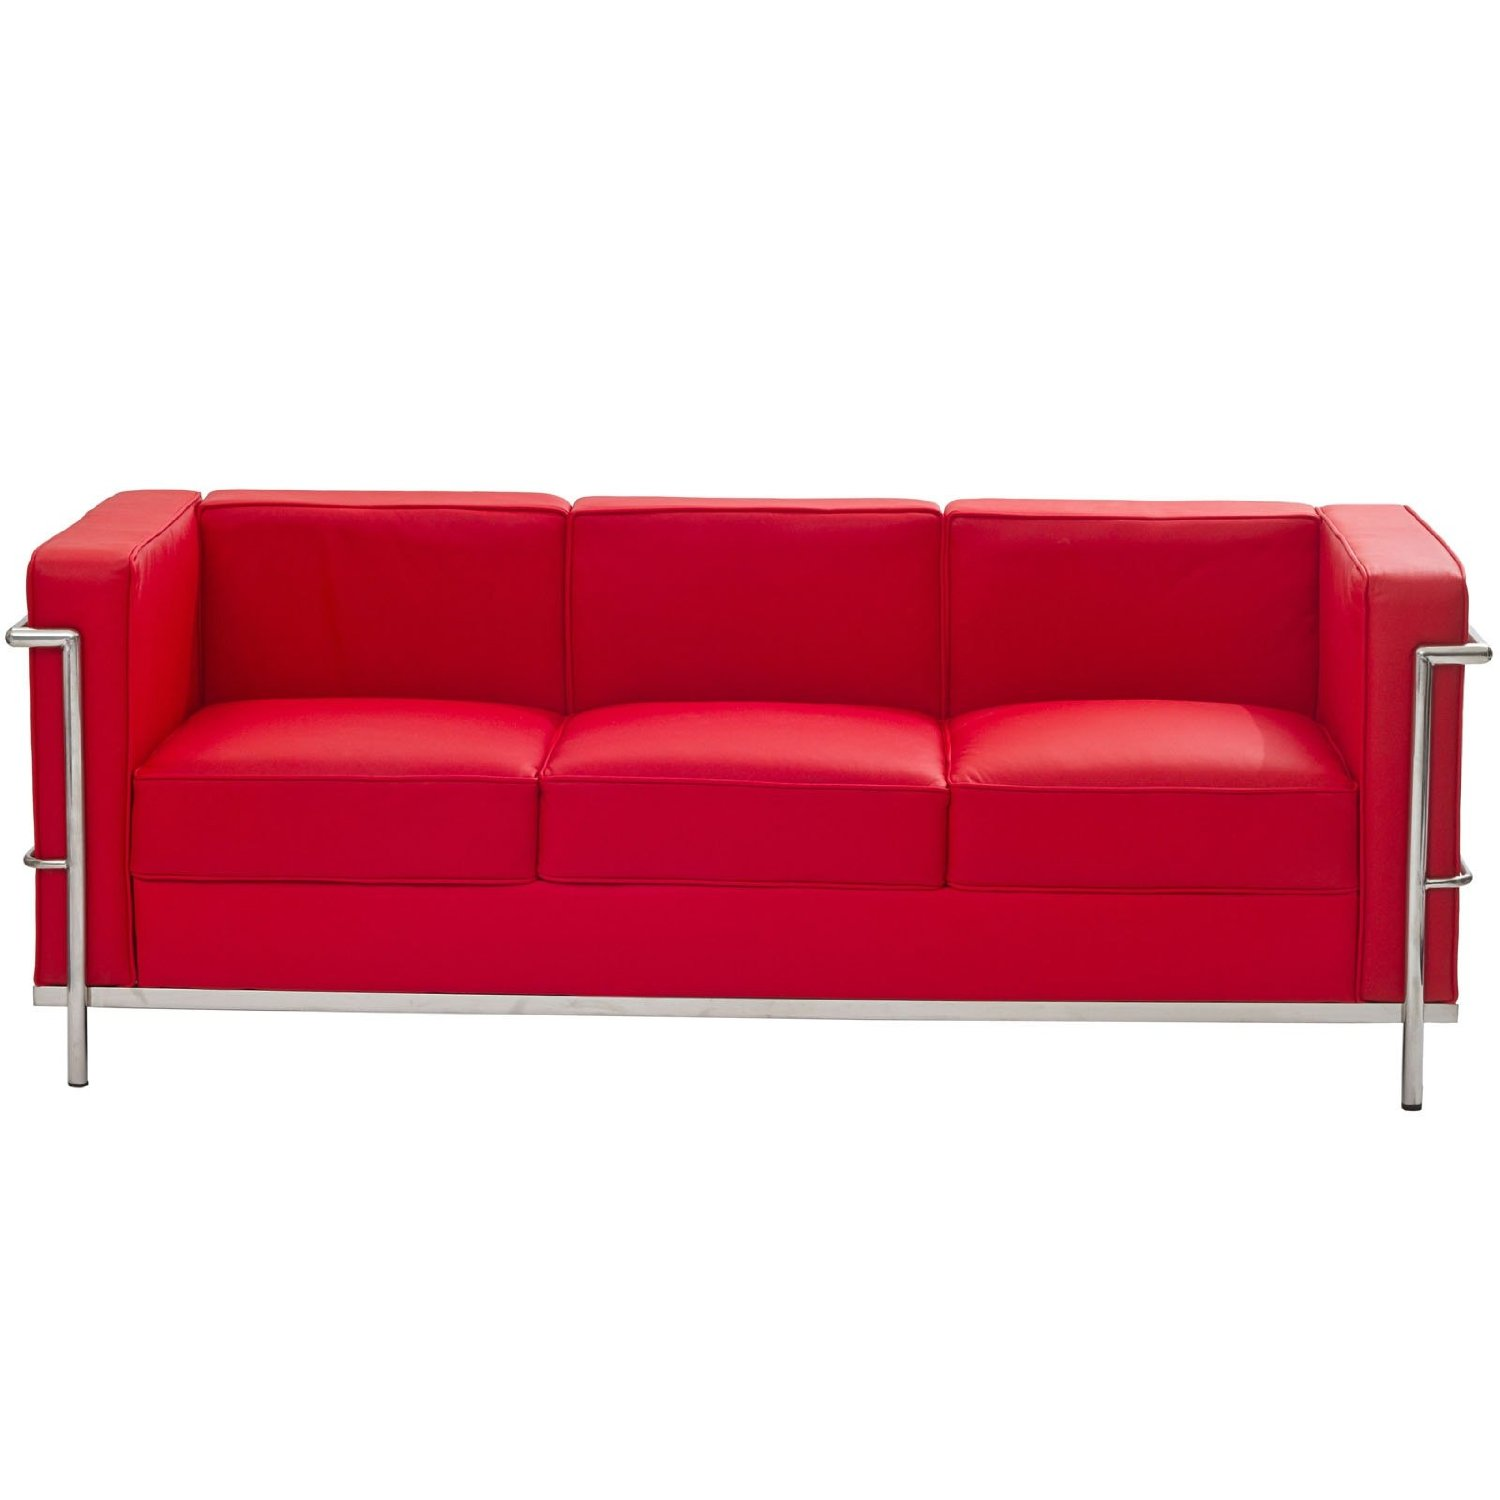 leather $ 301 64 modern tufted red leather sofa bed 1500 x 1500